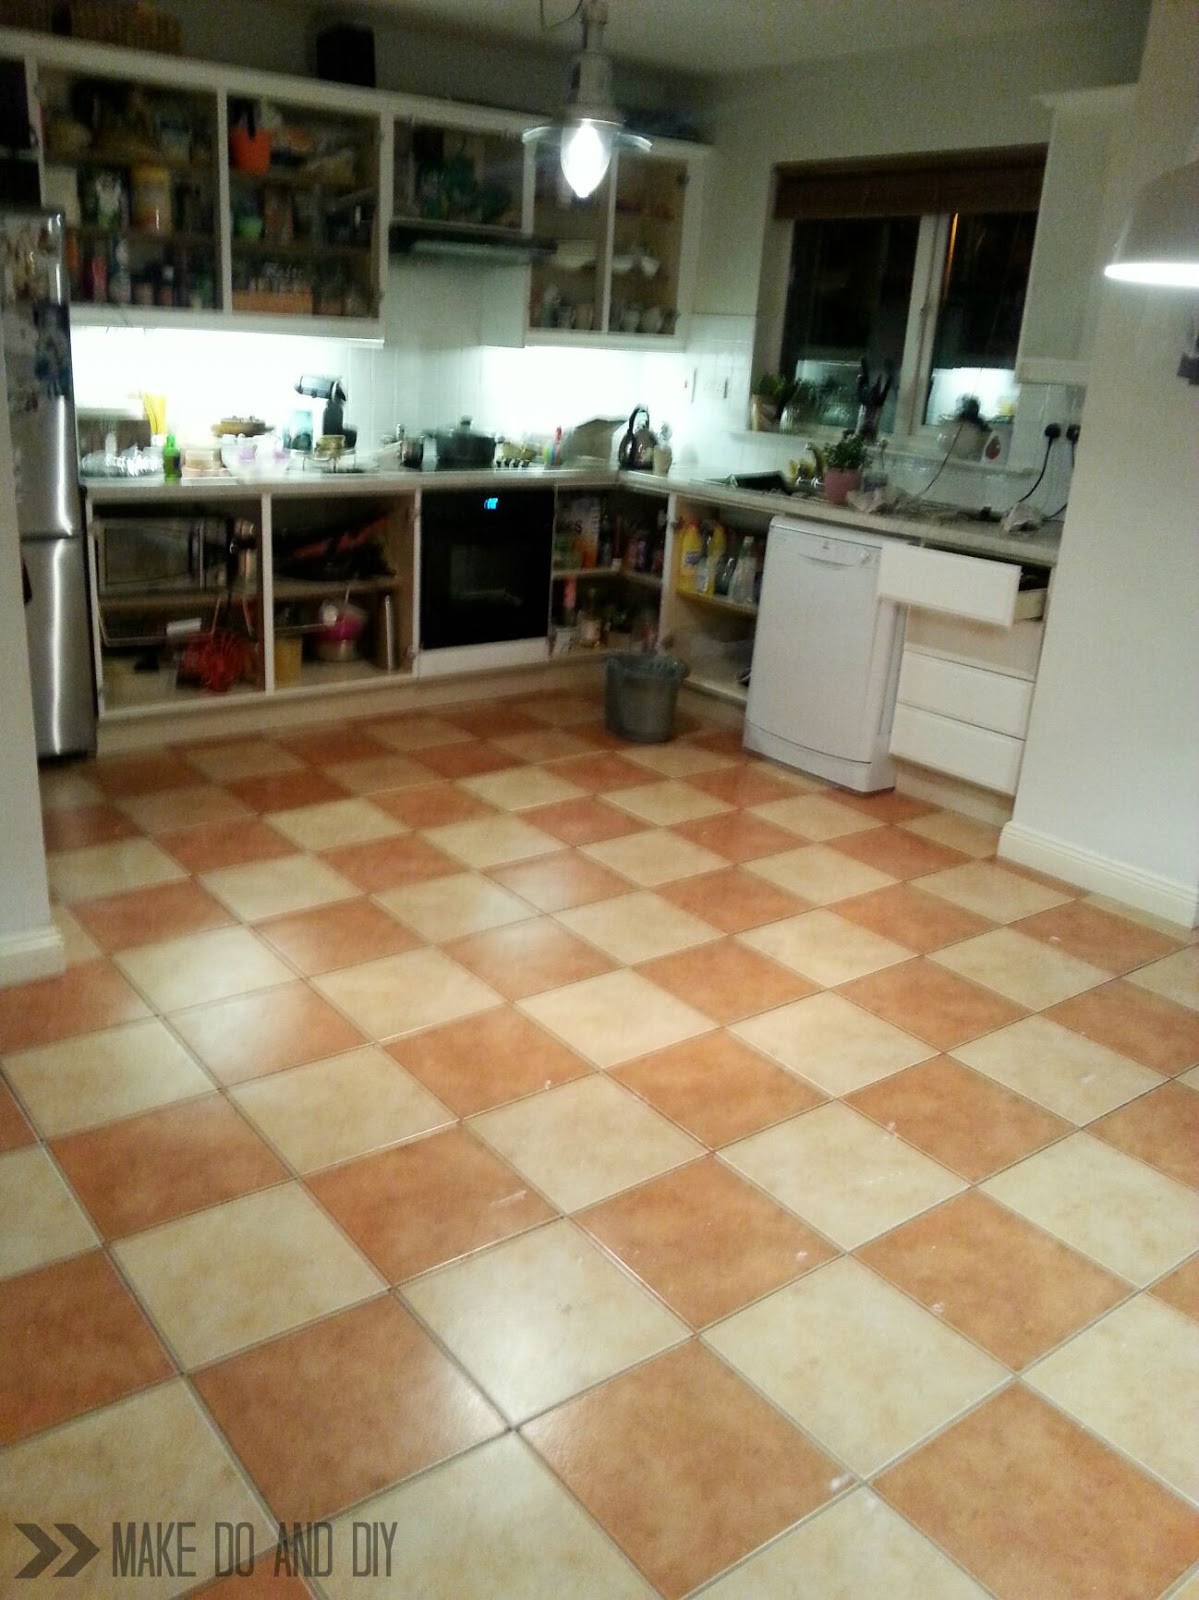 Painted floor tiles